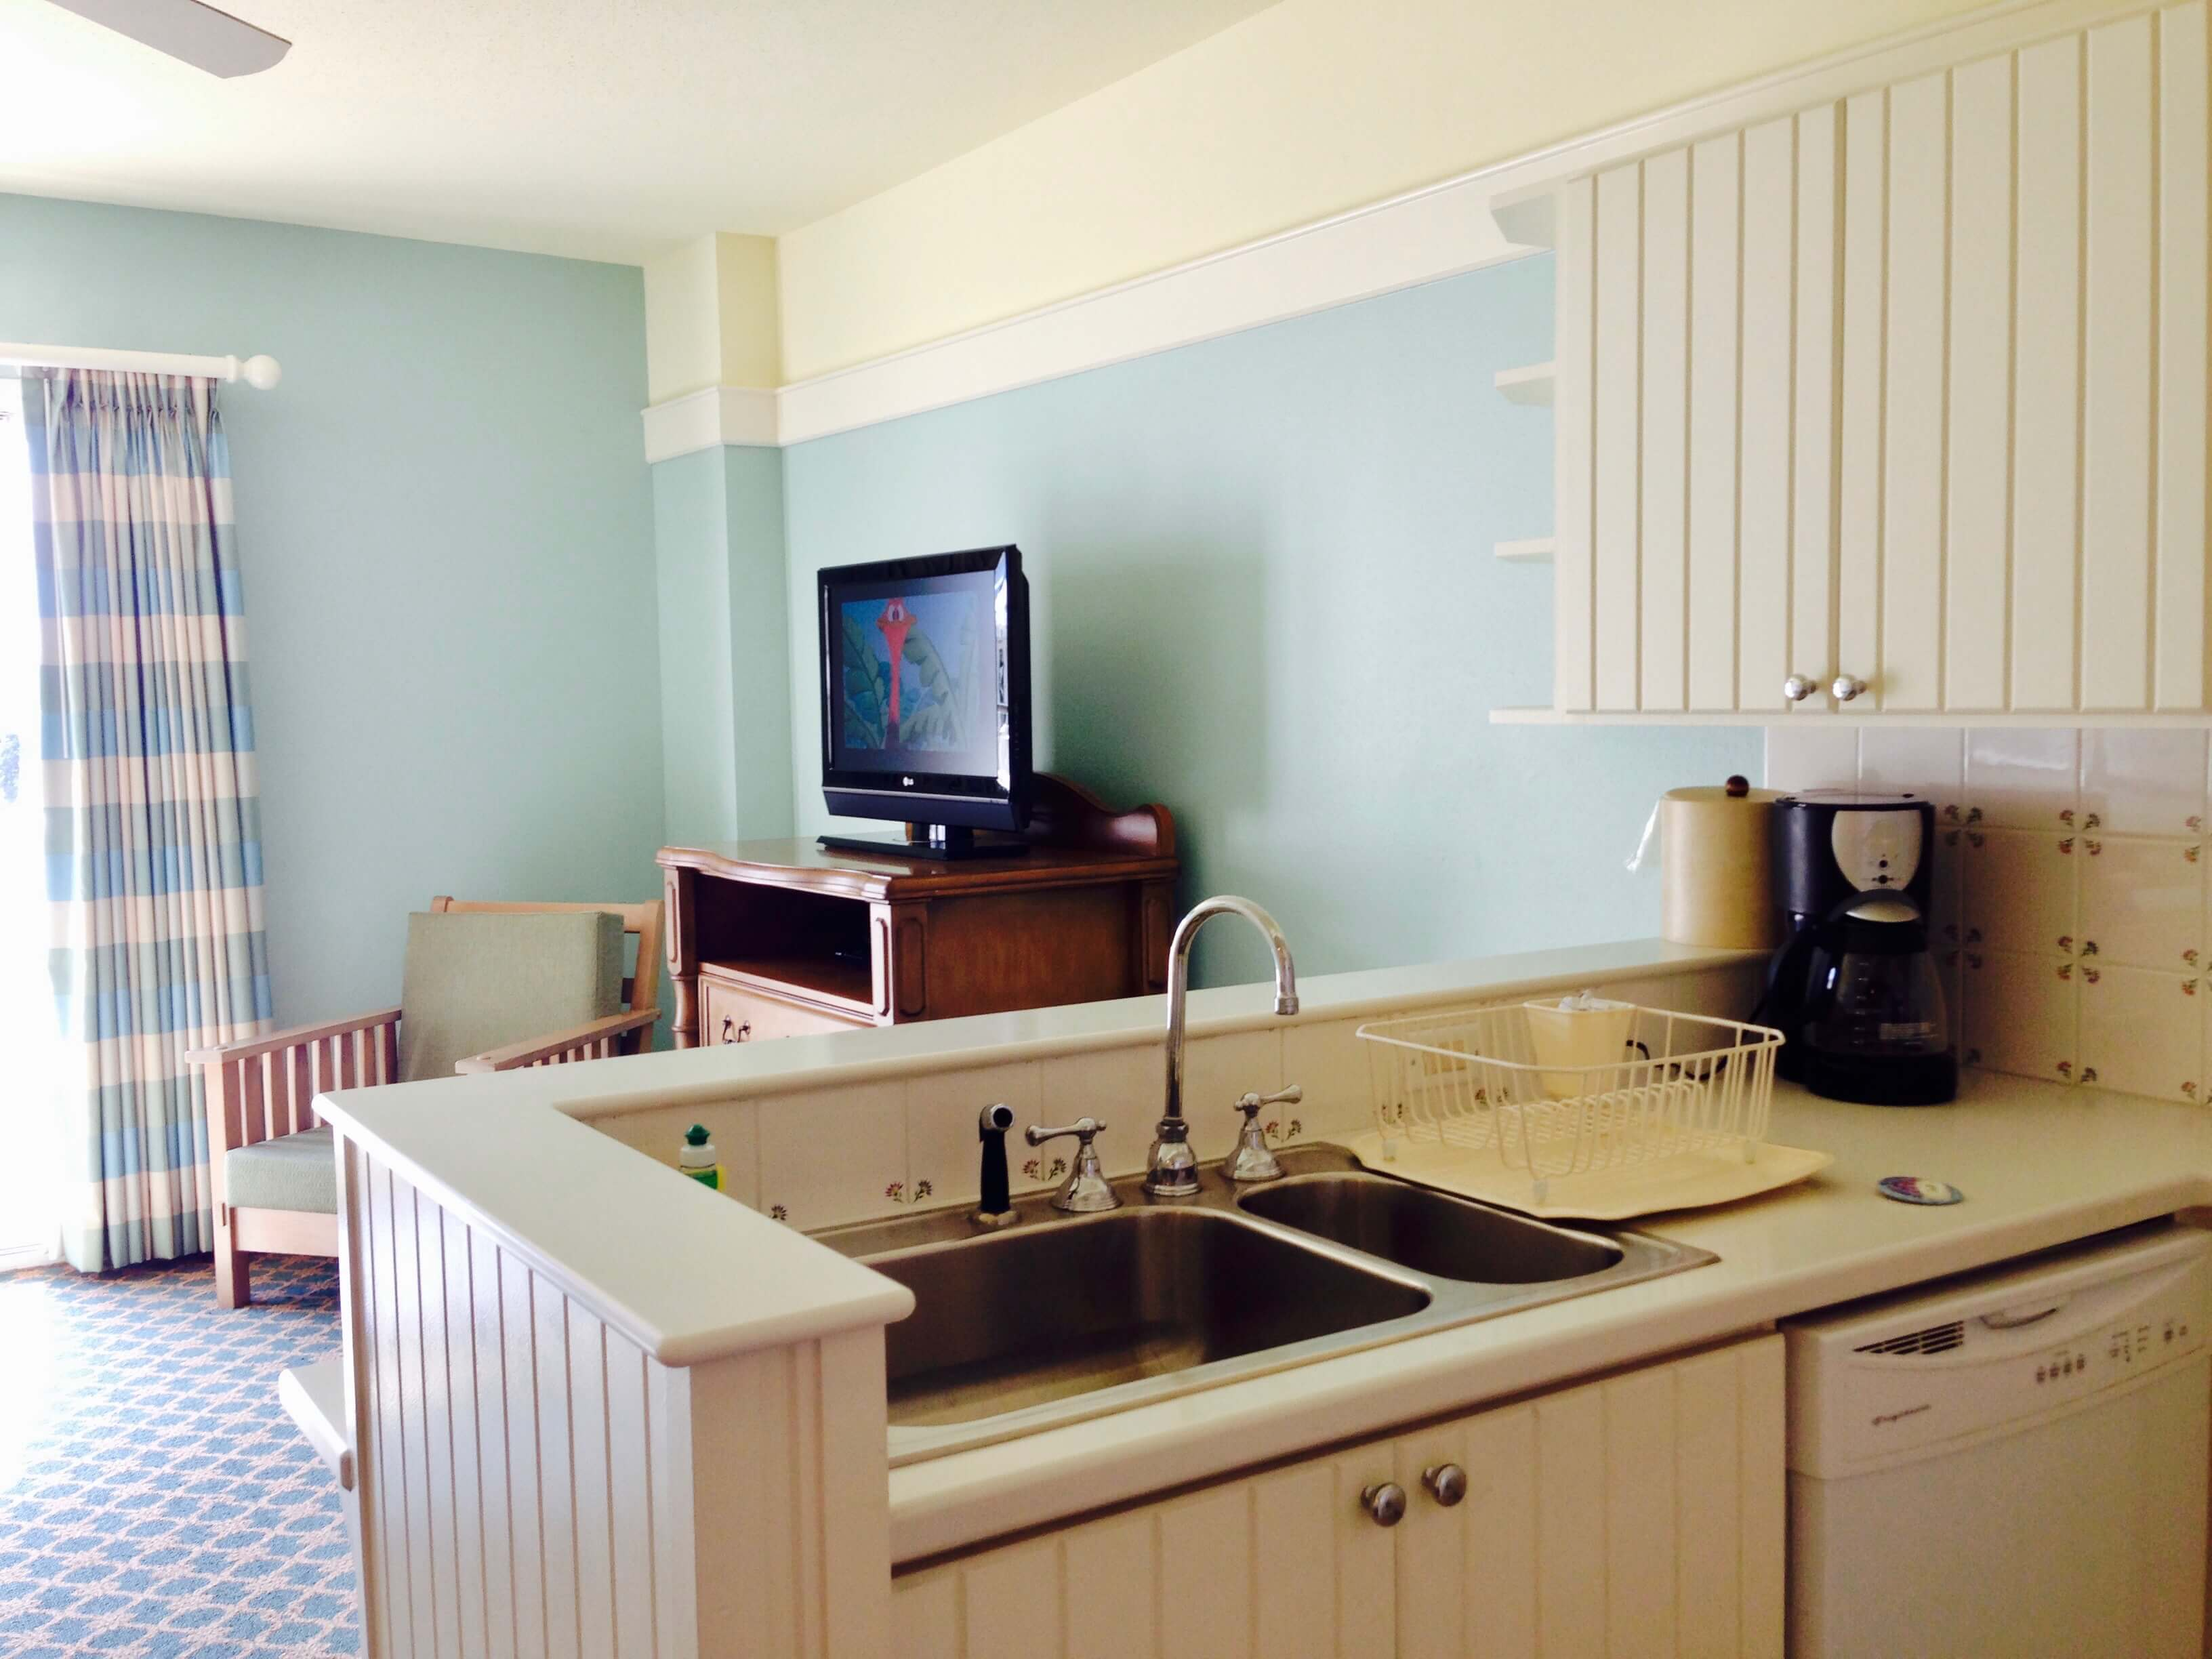 dvc bwv kitchen looking into living area